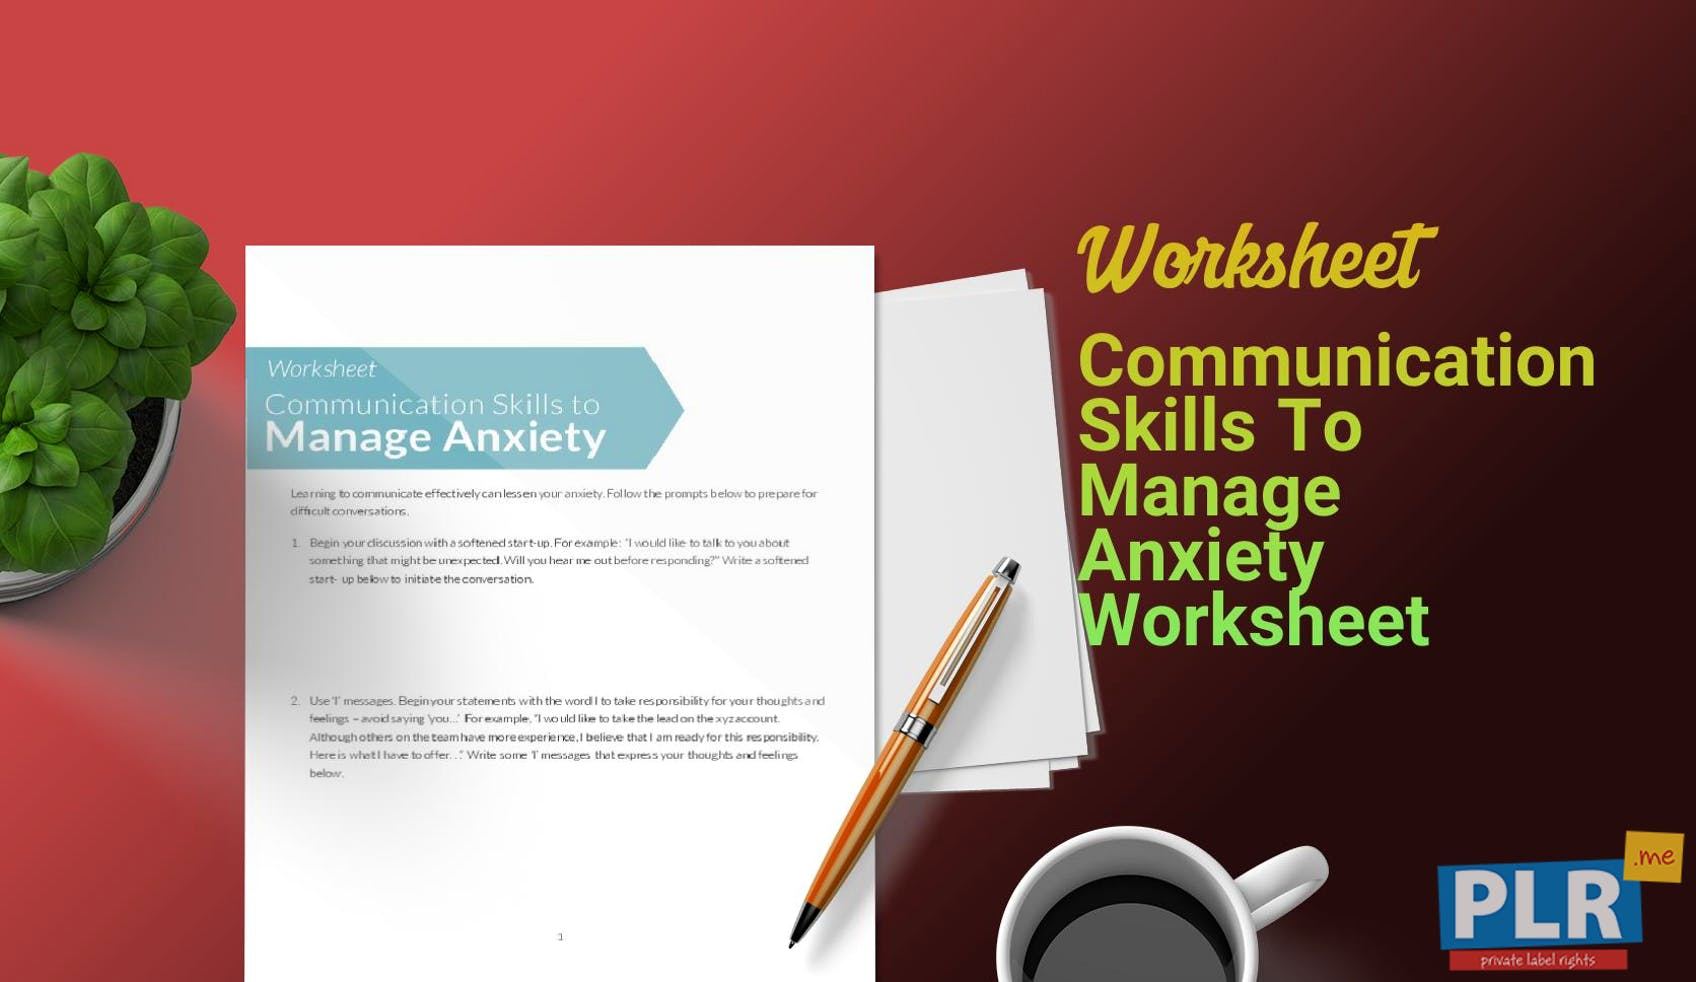 Plr Worksheets Communication Skills To Manage Anxiety Worksheet Me